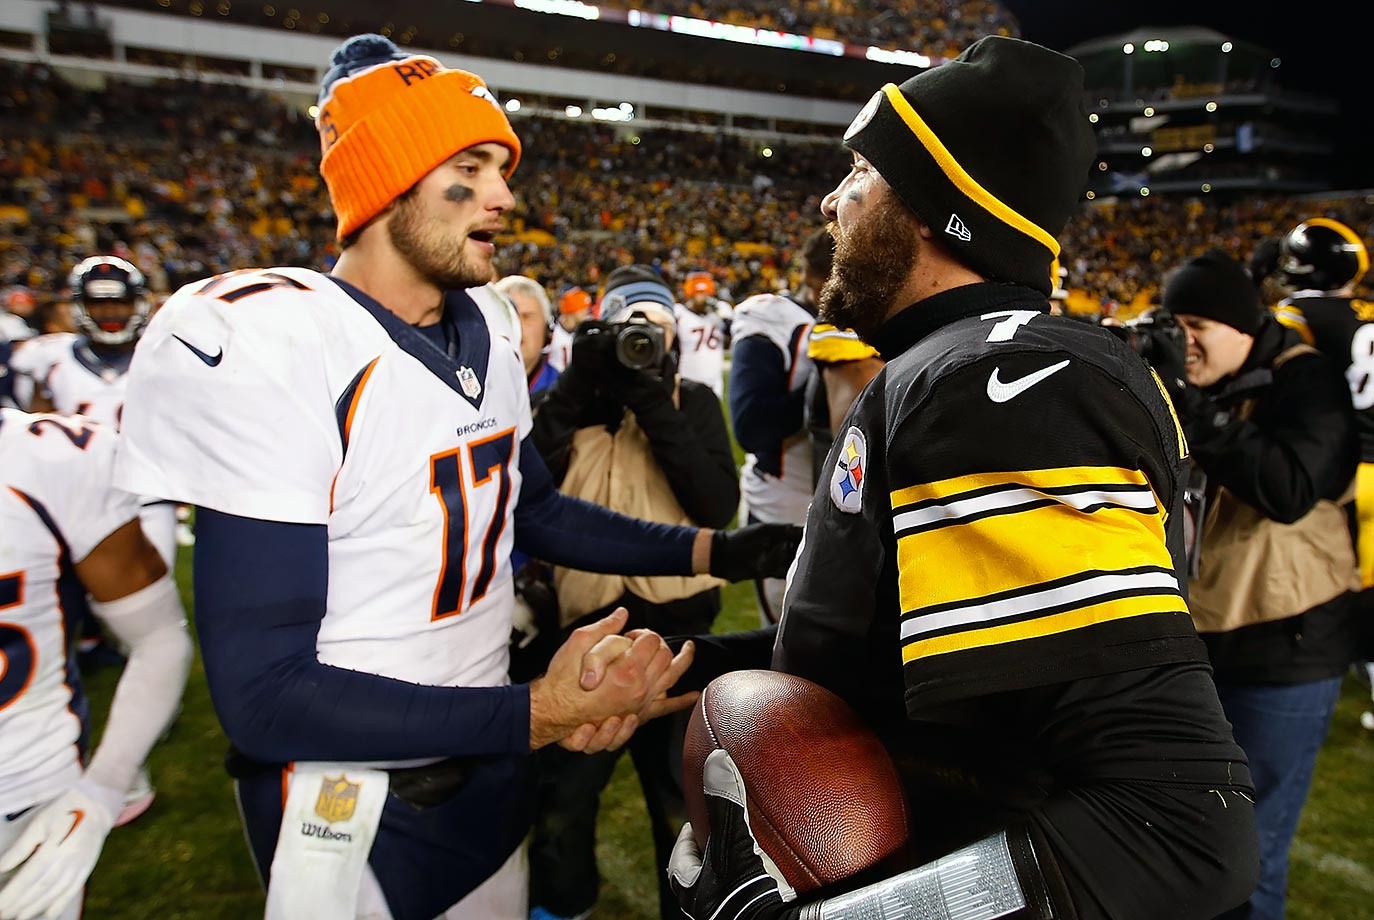 The game against the Steelers was one of Osweiler's best. He threw for 296 yards with three touchdowns and one interception, and he even added a rushing touchdown. He threw a 61-yard touchdown to Emmanuel Sanders, who had 181 yards receiving on the day. They were up 27-10 towards the end of the first half, but Pittsburgh quarterback Ben Roethlisberger threw three second-half touchdowns, handing the Broncos their fourth loss of the season.